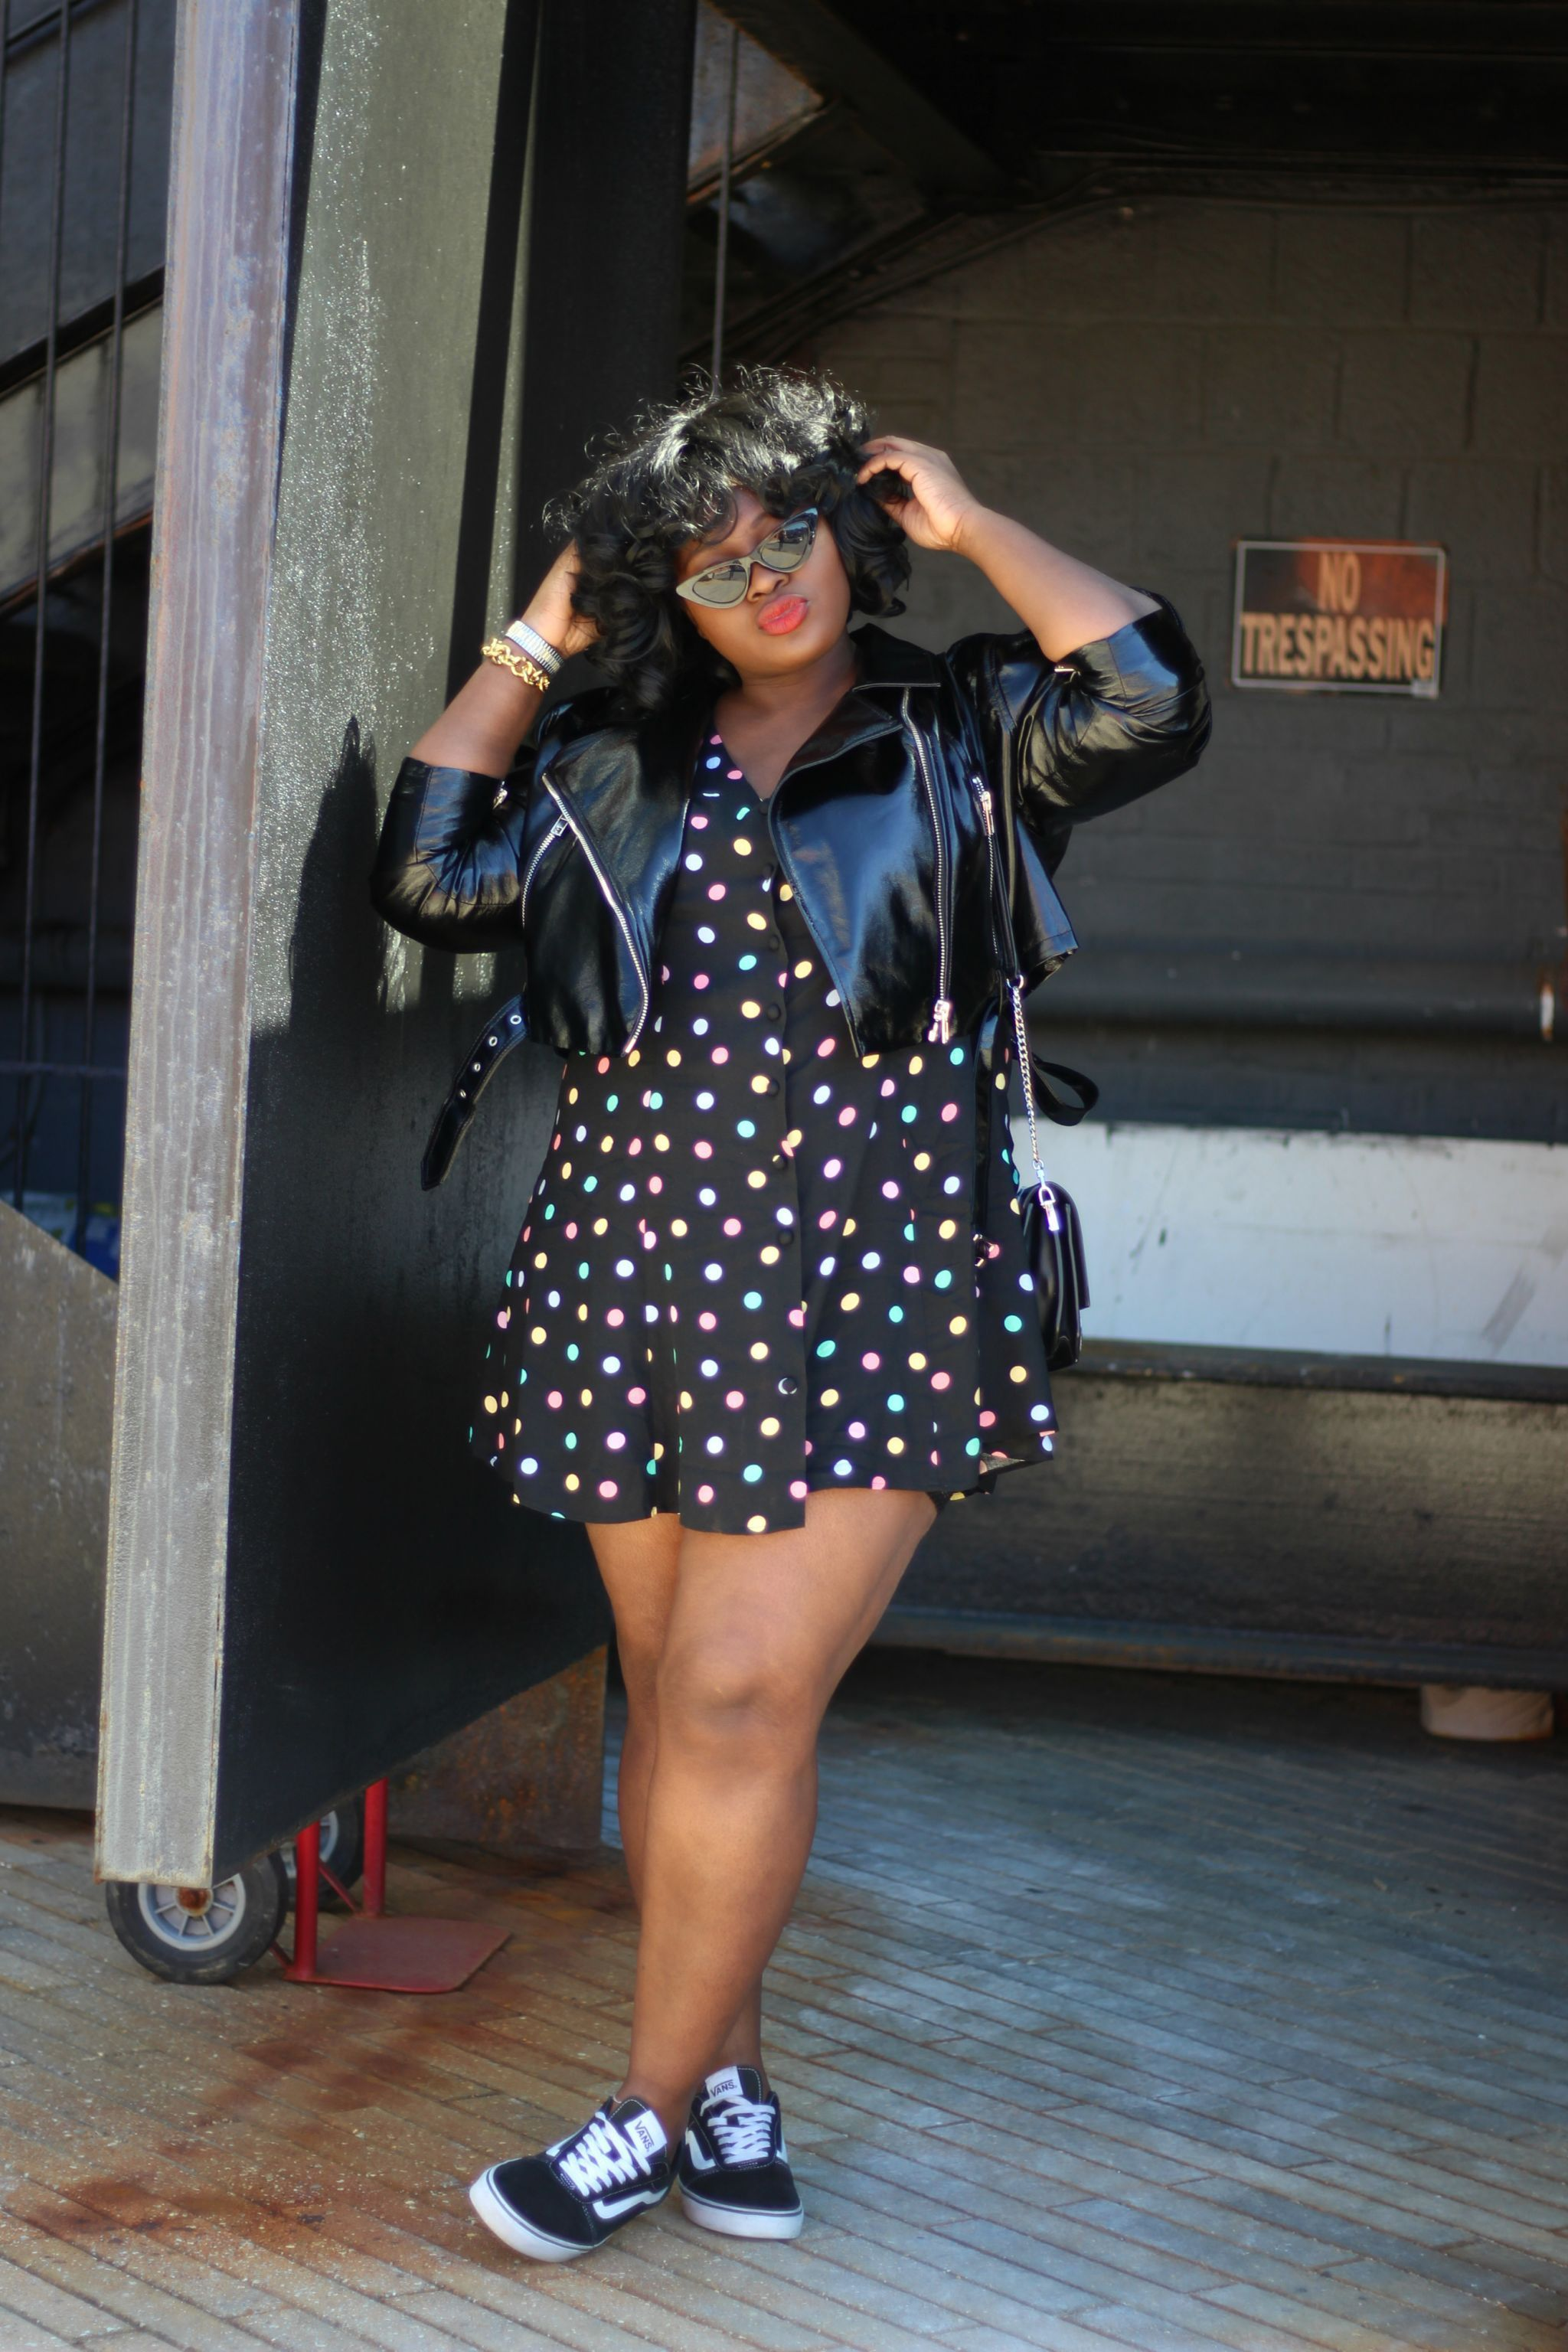 899817ec8edfee Sweet'n Chic Streetstyle with polka-dotted mini dress, classic Vans and a  shiny leather jacket in perfecto cut. | Plus Size Fashion #curvyfashion